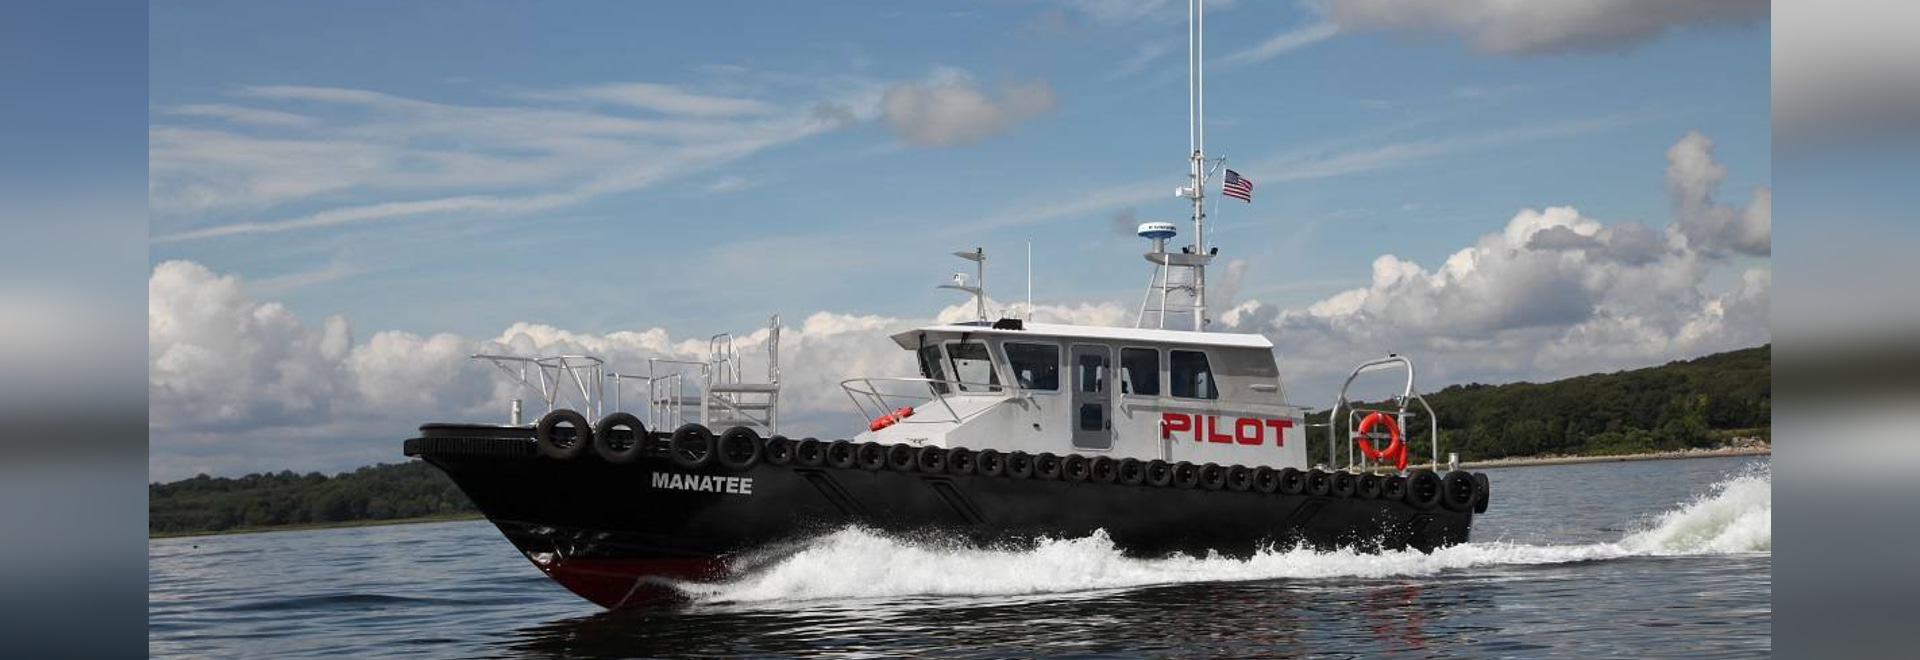 The Manatee, an upgraded Chesapeake-class pilot boat built by Gladding-Hearn for the Tampa Bay Pilots.